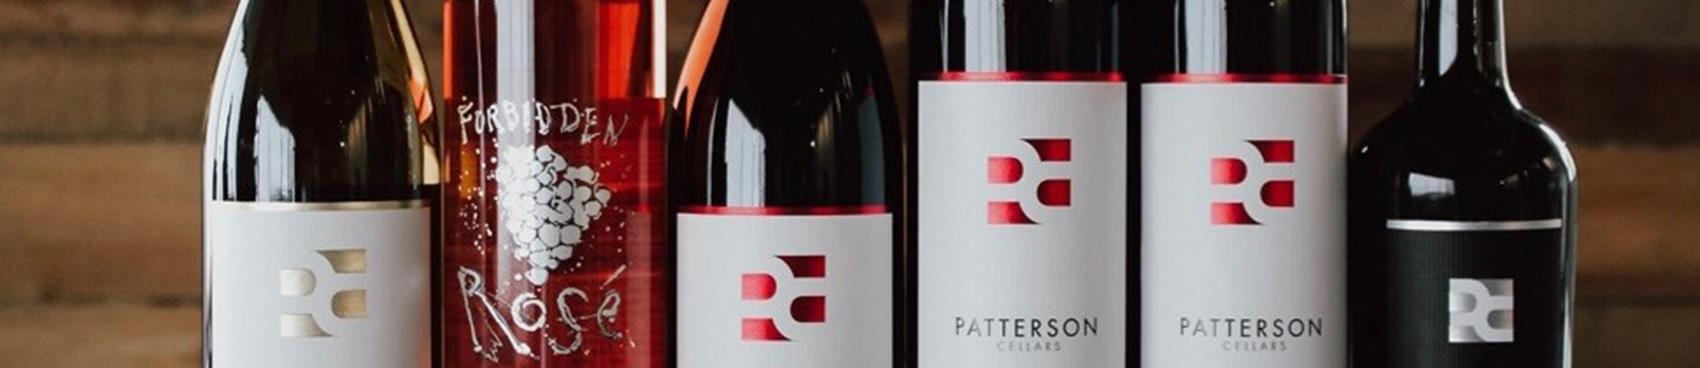 Purchase Tickets to Fall 2019 Release Party - SODO Tasting Room at Patterson Cellars on CellarPass